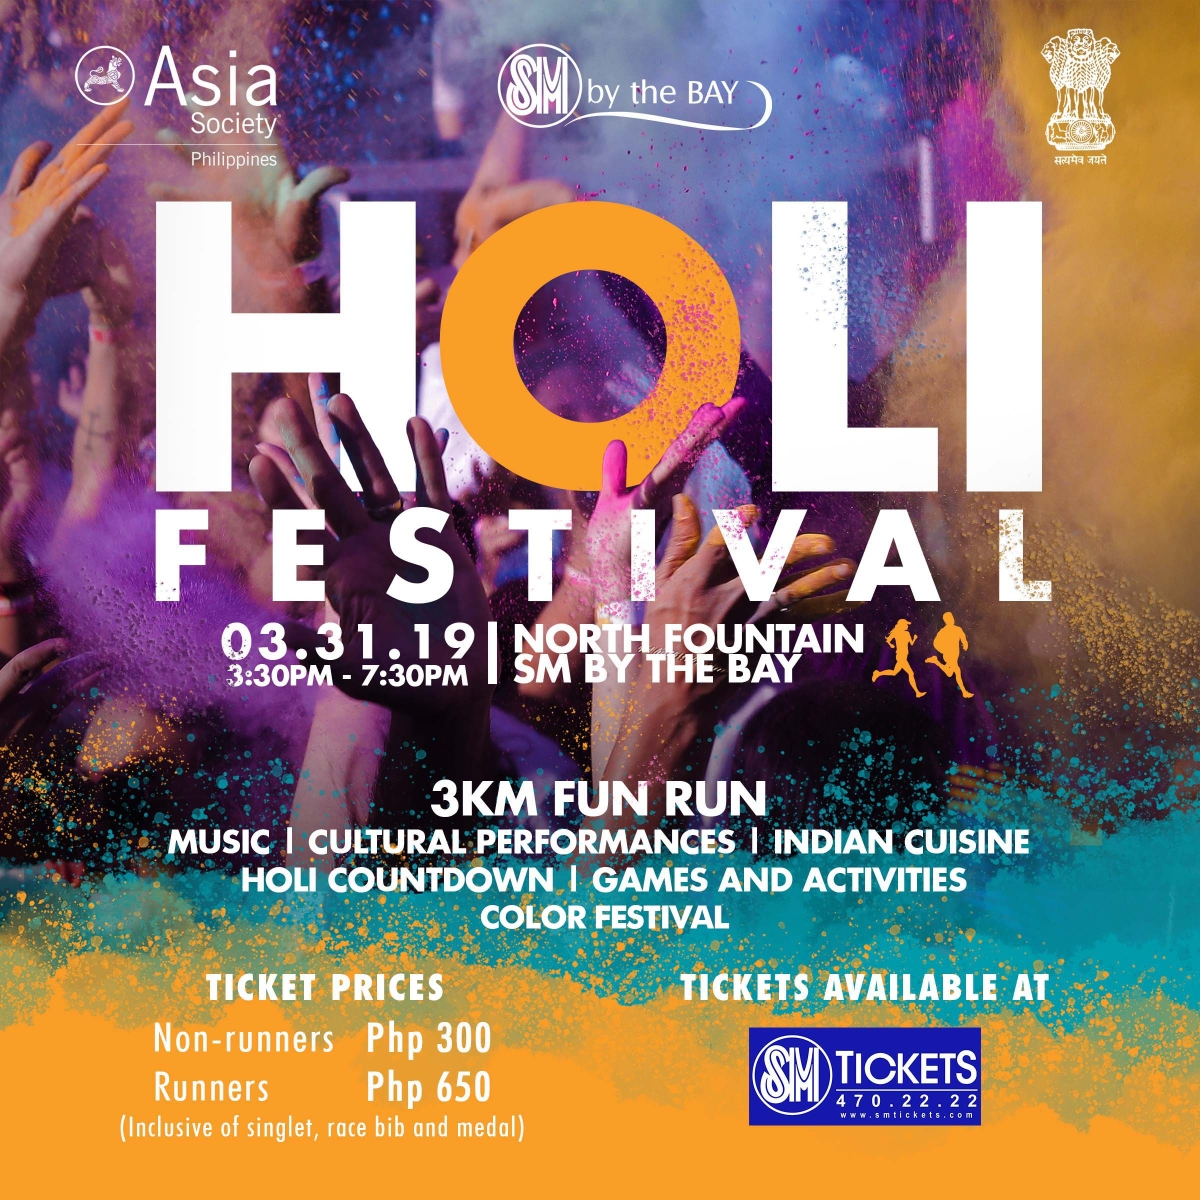 Holi Festival 2019 | 31 March 2019, 3:30 PM | North Fountain, SM by the BAY